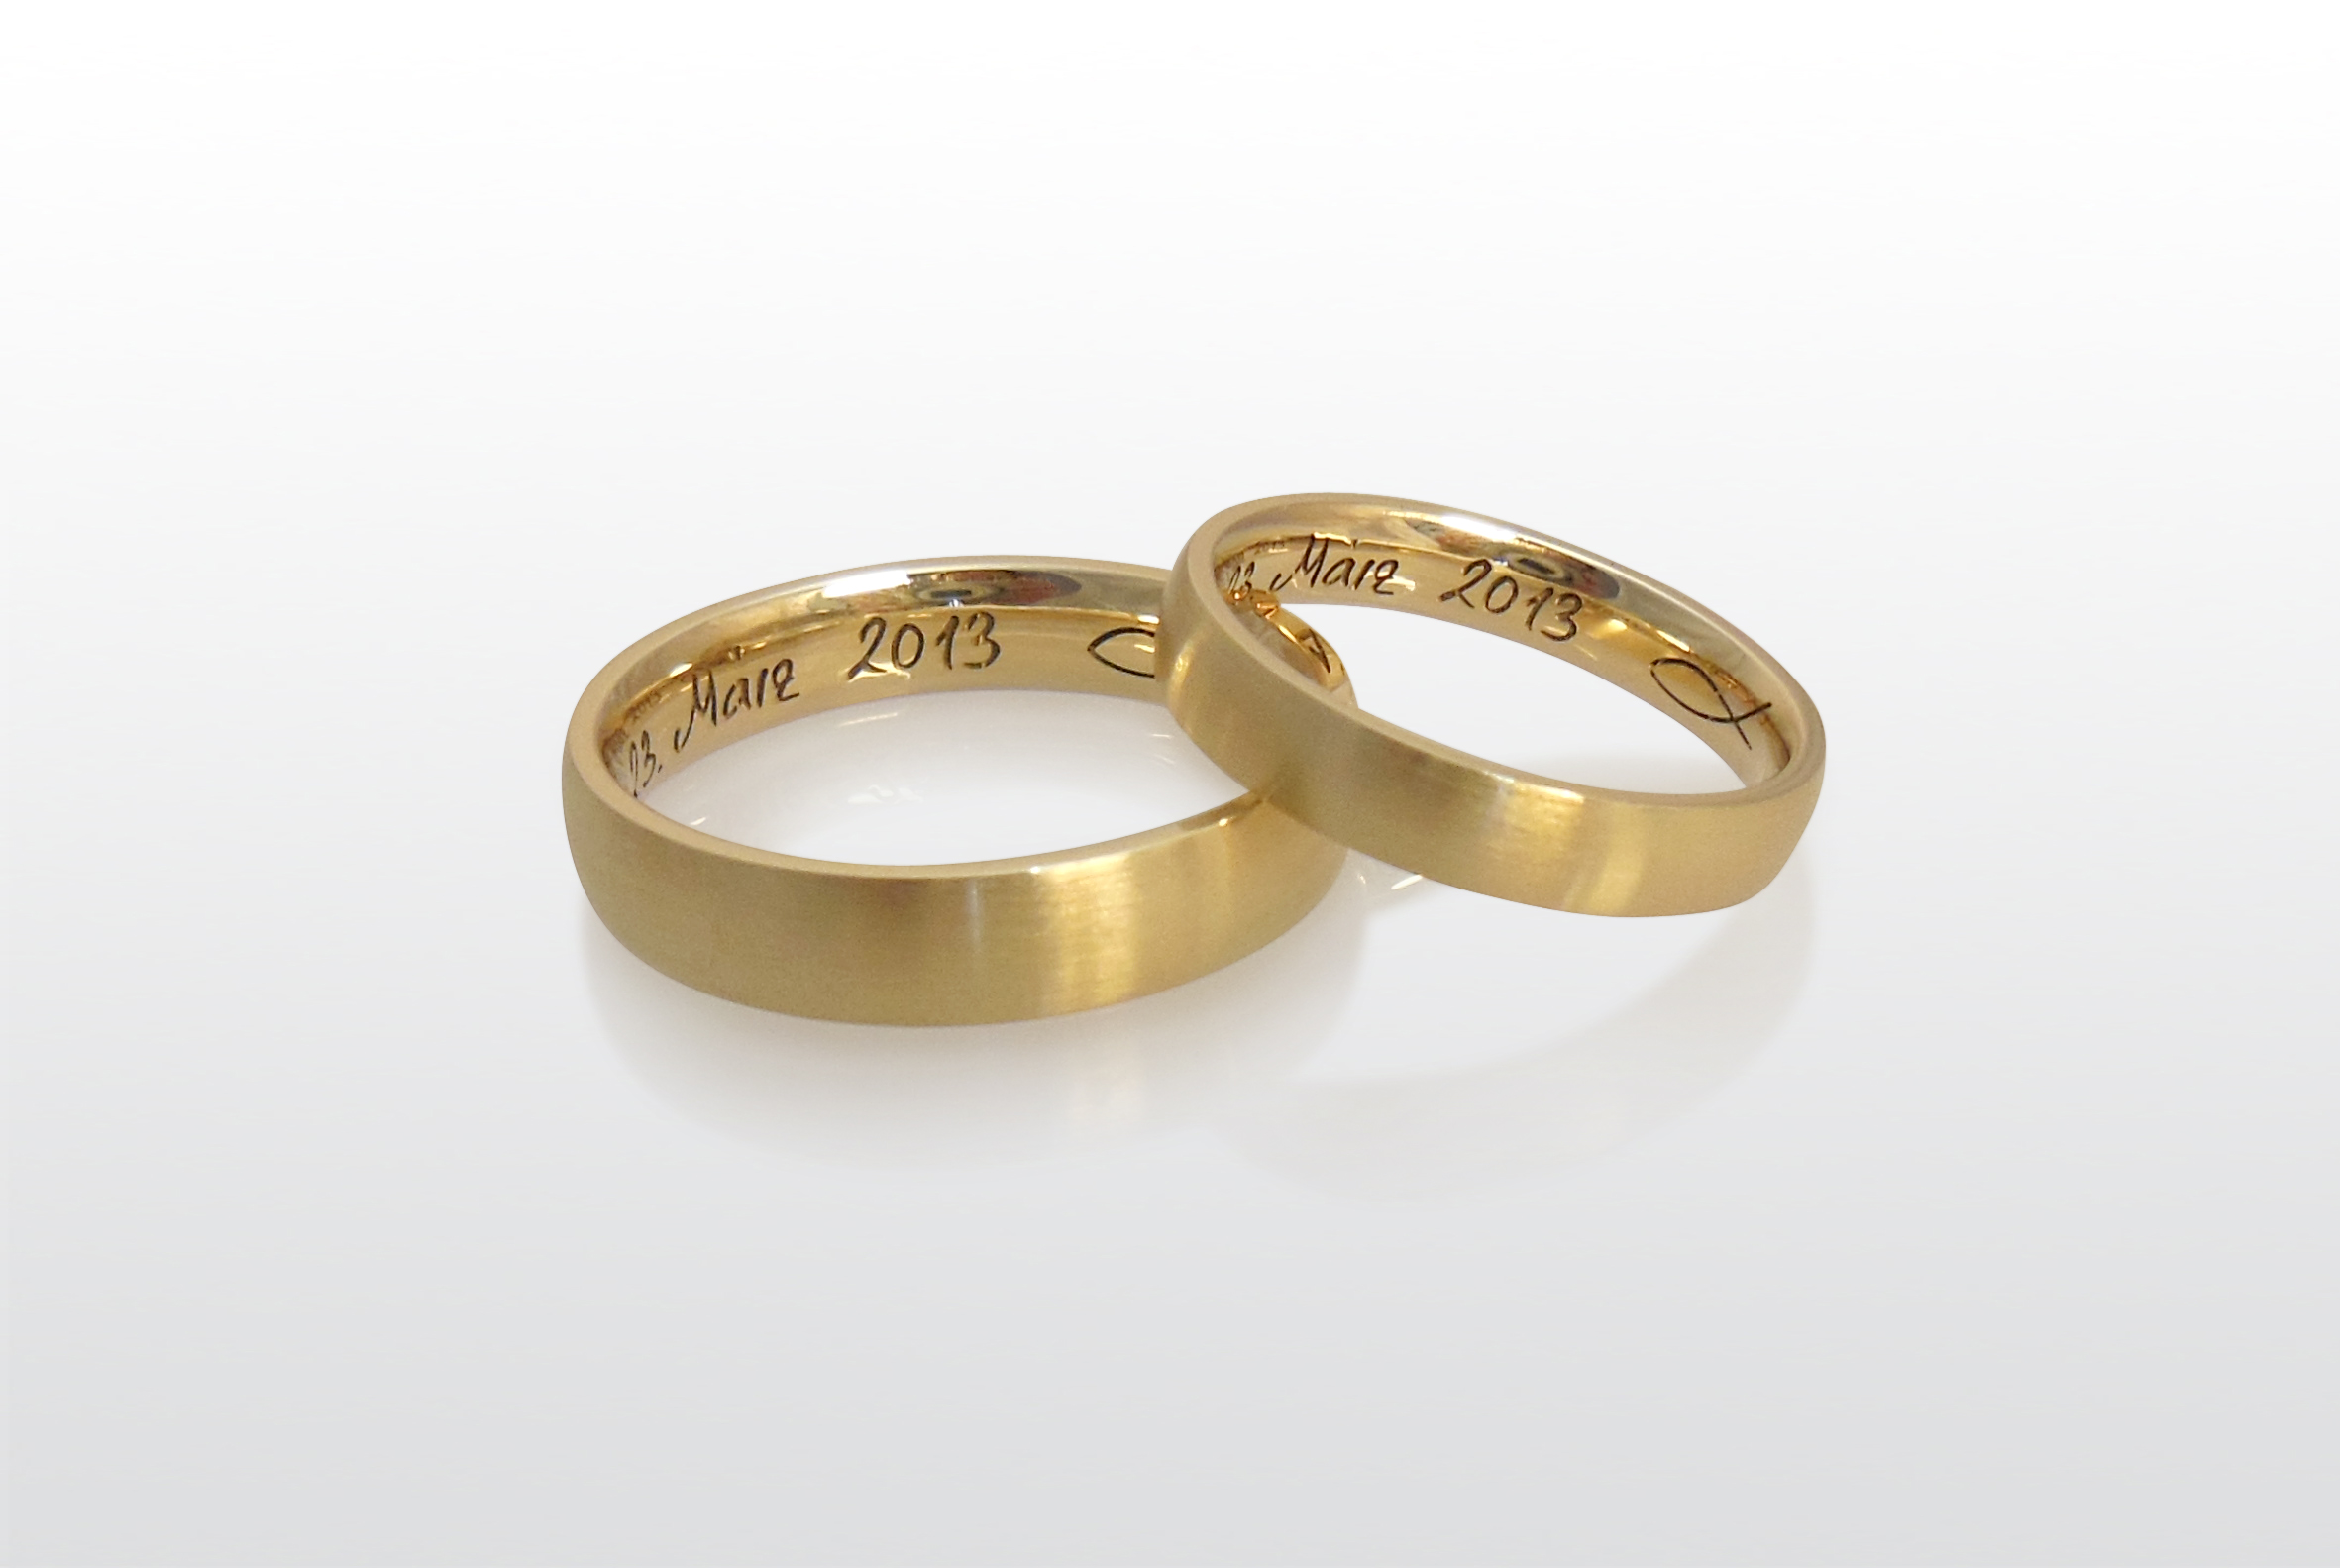 ... Ringe on Pinterest  Contemporary jewellery, Wedding ring and Band